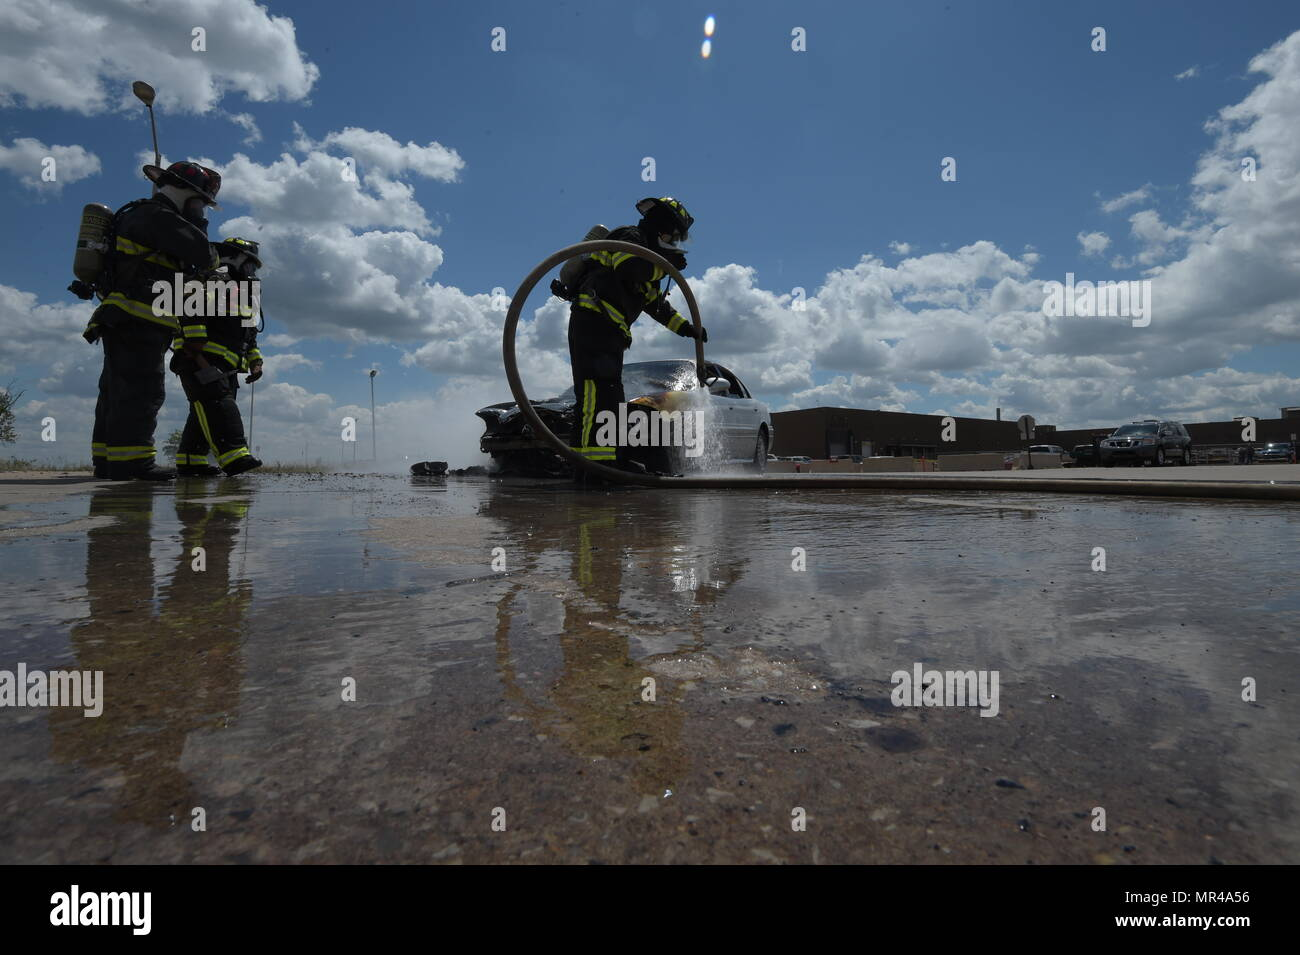 Members of the Tinker Fire and Emergency Services, 72nd Civil Engineer Squadron, work together to extinguish a vehicle fire May 4, 2017, Tinker Air Force Base, Oklahoma. William Green hoses the wheel-well of the car down while Capt. David Jones, left, and Aaron Simpson, background, stands-by as spotters. The privately-owned vehicle developed mechanical trouble and caught fire near the Oklahoma City Air Logistics Complexs' building 9001. (U.S. Air Force photo/Greg L. Davis) - Stock Image